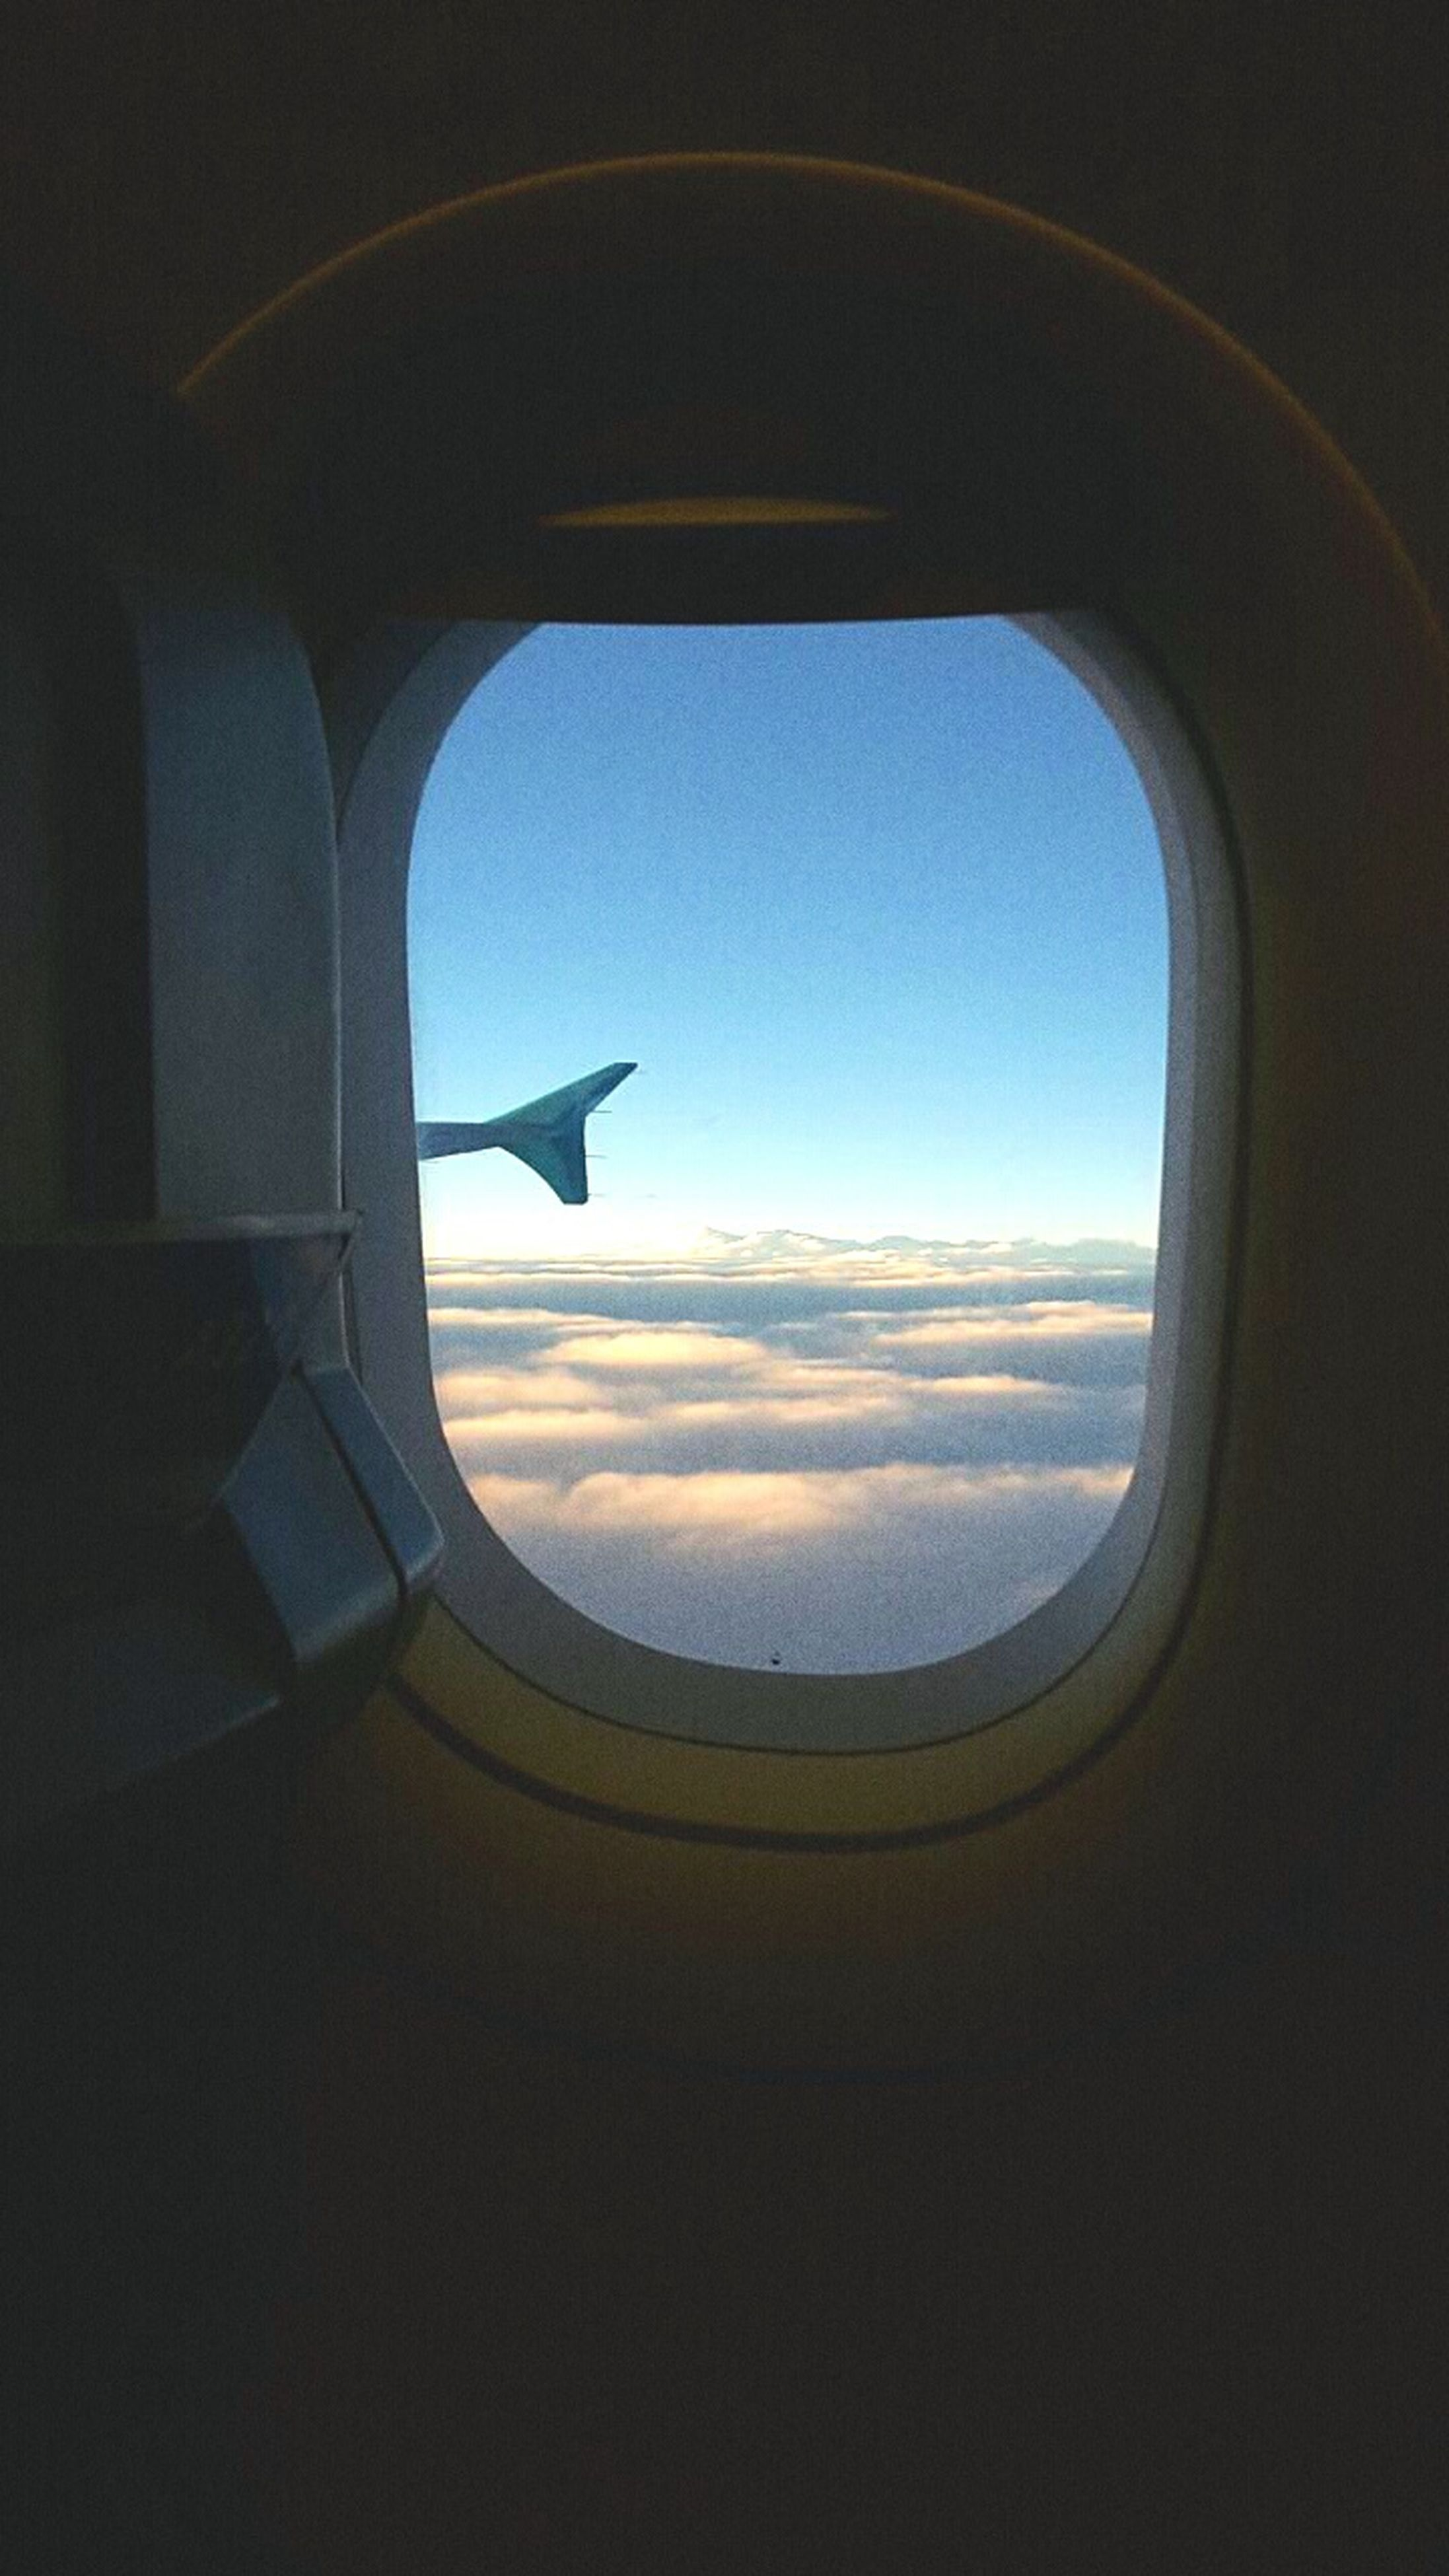 airplane, air vehicle, flying, window, sky, transportation, indoors, aircraft wing, mode of transport, vehicle interior, travel, mid-air, glass - material, cloud - sky, journey, part of, aerial view, transparent, landscape, scenics